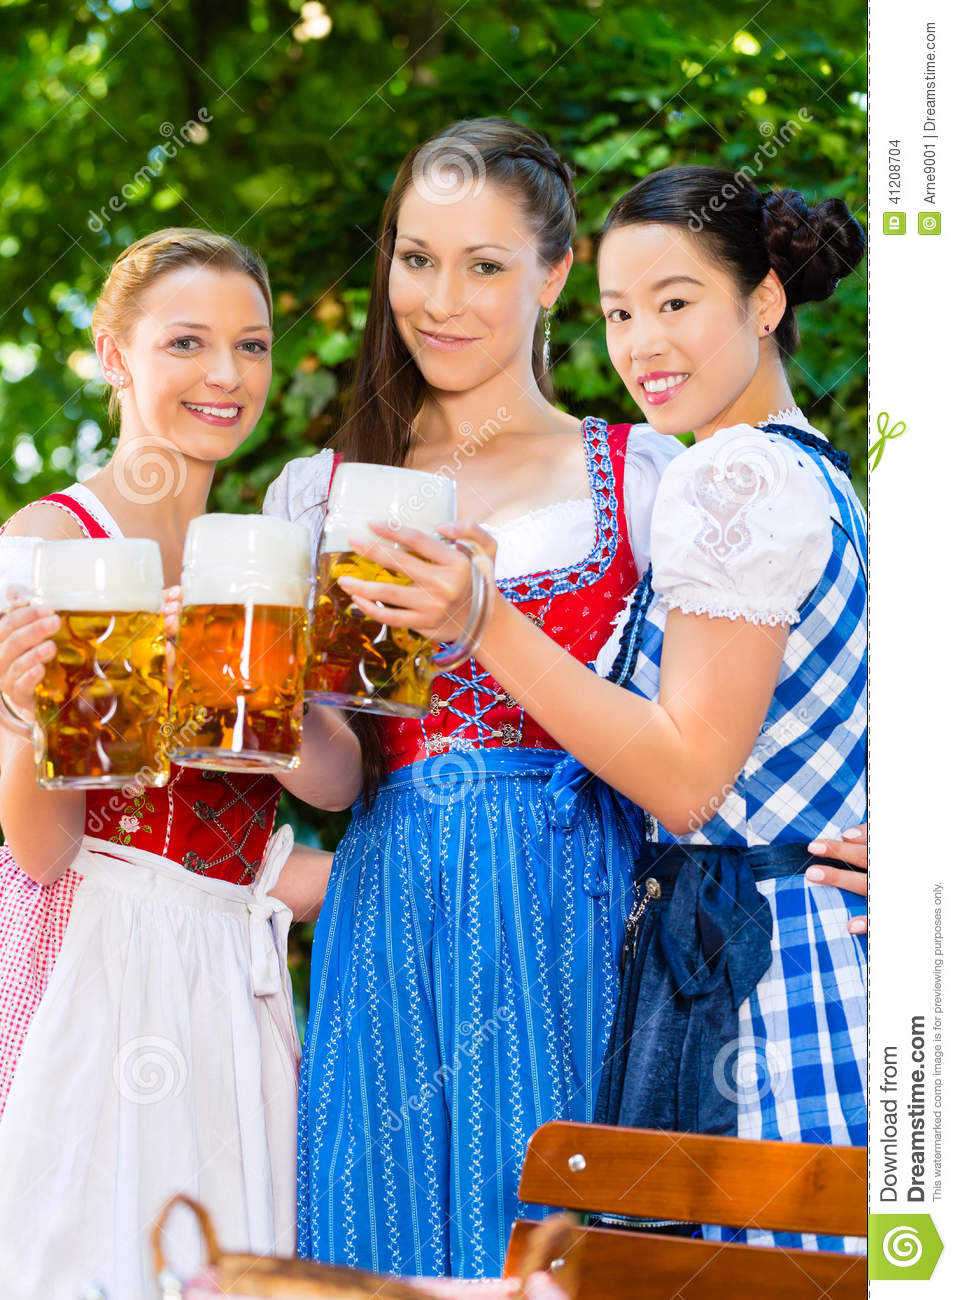 promo code d2904 b2e4a Beer Garden - Friends In Traditional Clothes In Bavaria ...